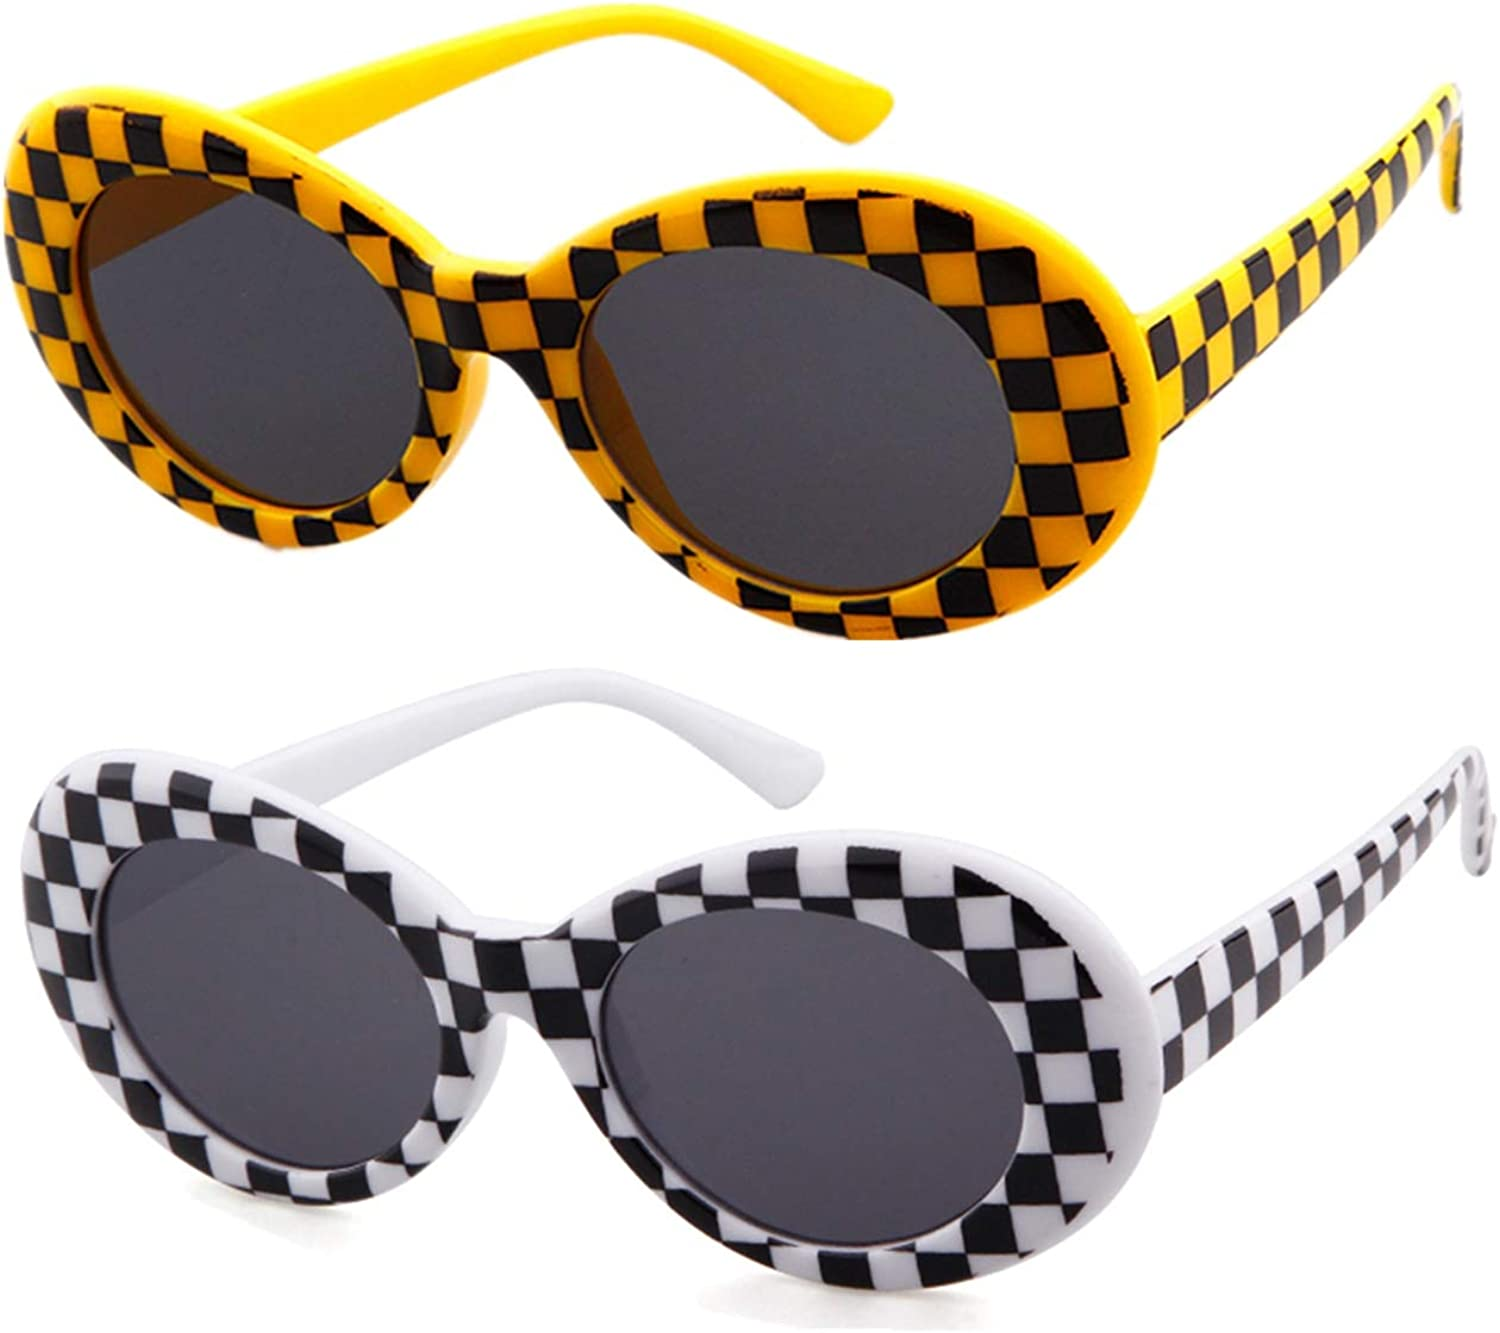 ADEWU Clout Goggles, Lunettes de Soleil Ovales 2 Pcs - Yellow & Black Checkered